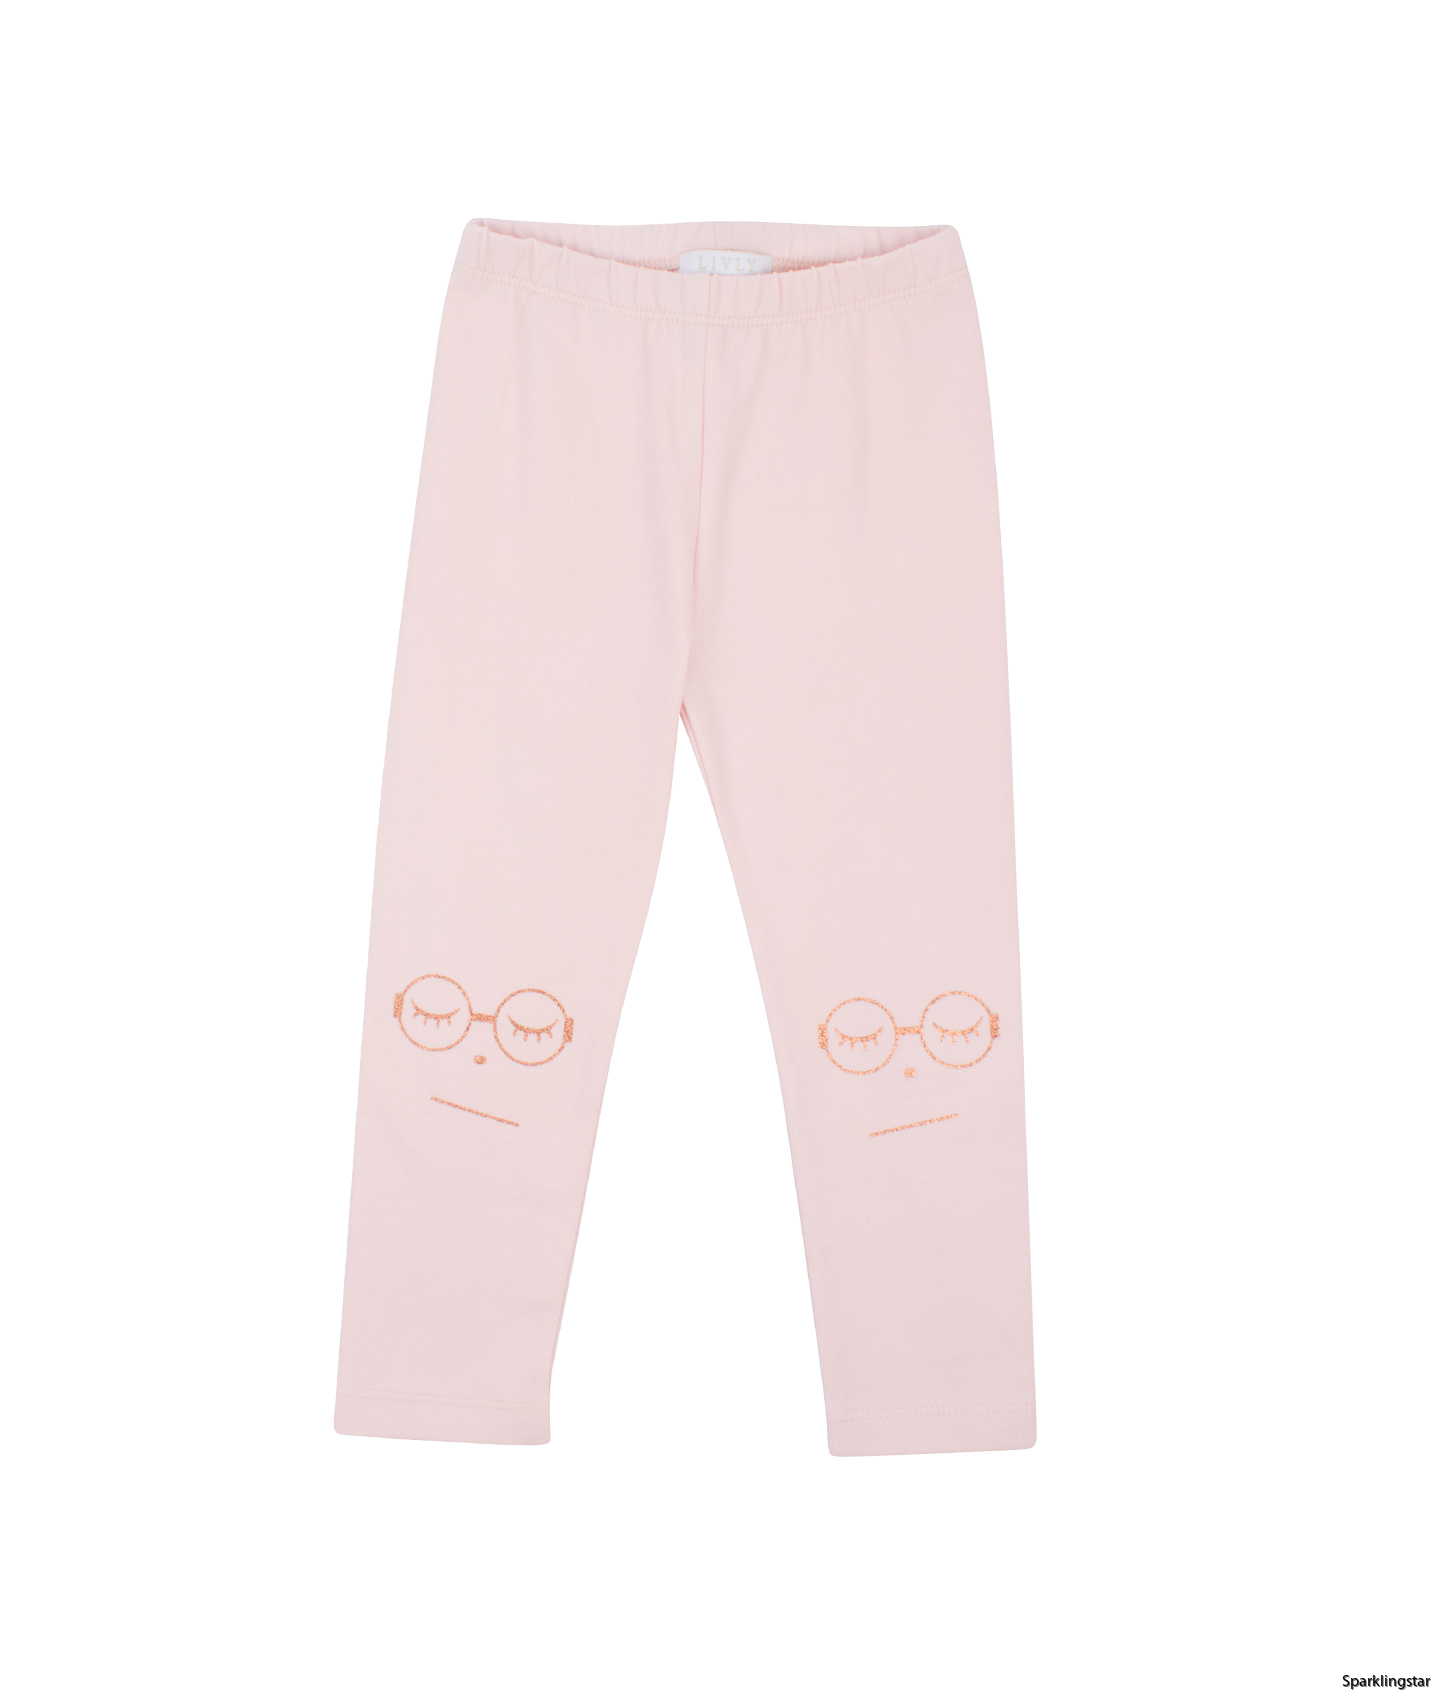 Livly Sleeping Cutie Glasses Essential Pants